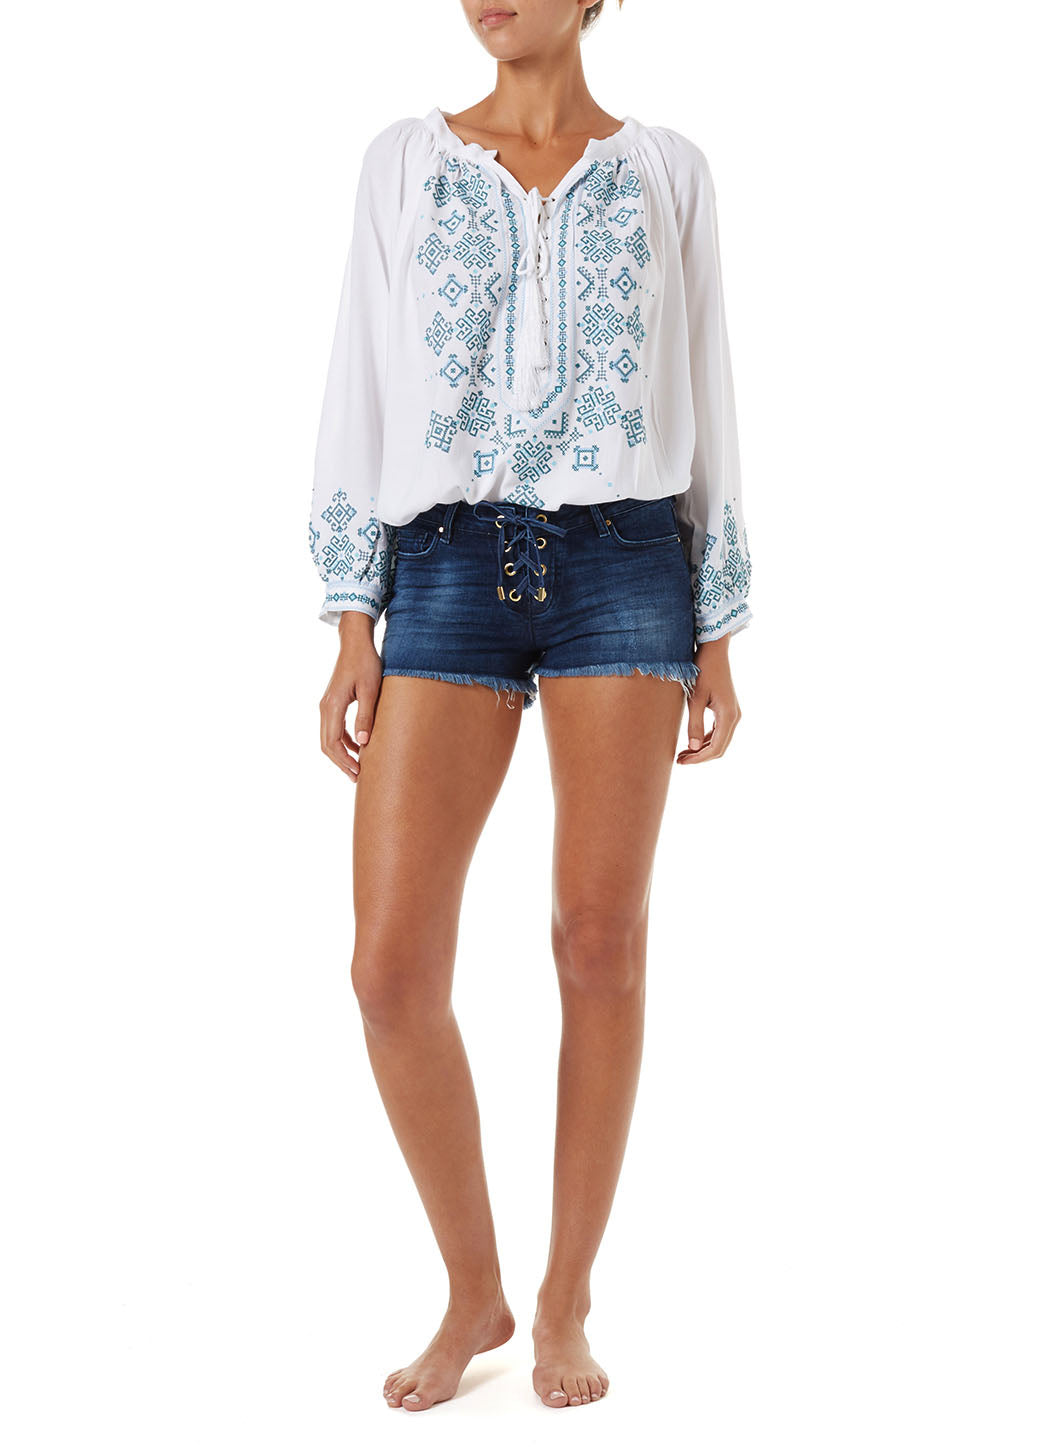 Alexi Denim Lace-Up Shorts - Melissa Odabash Beach Shorts